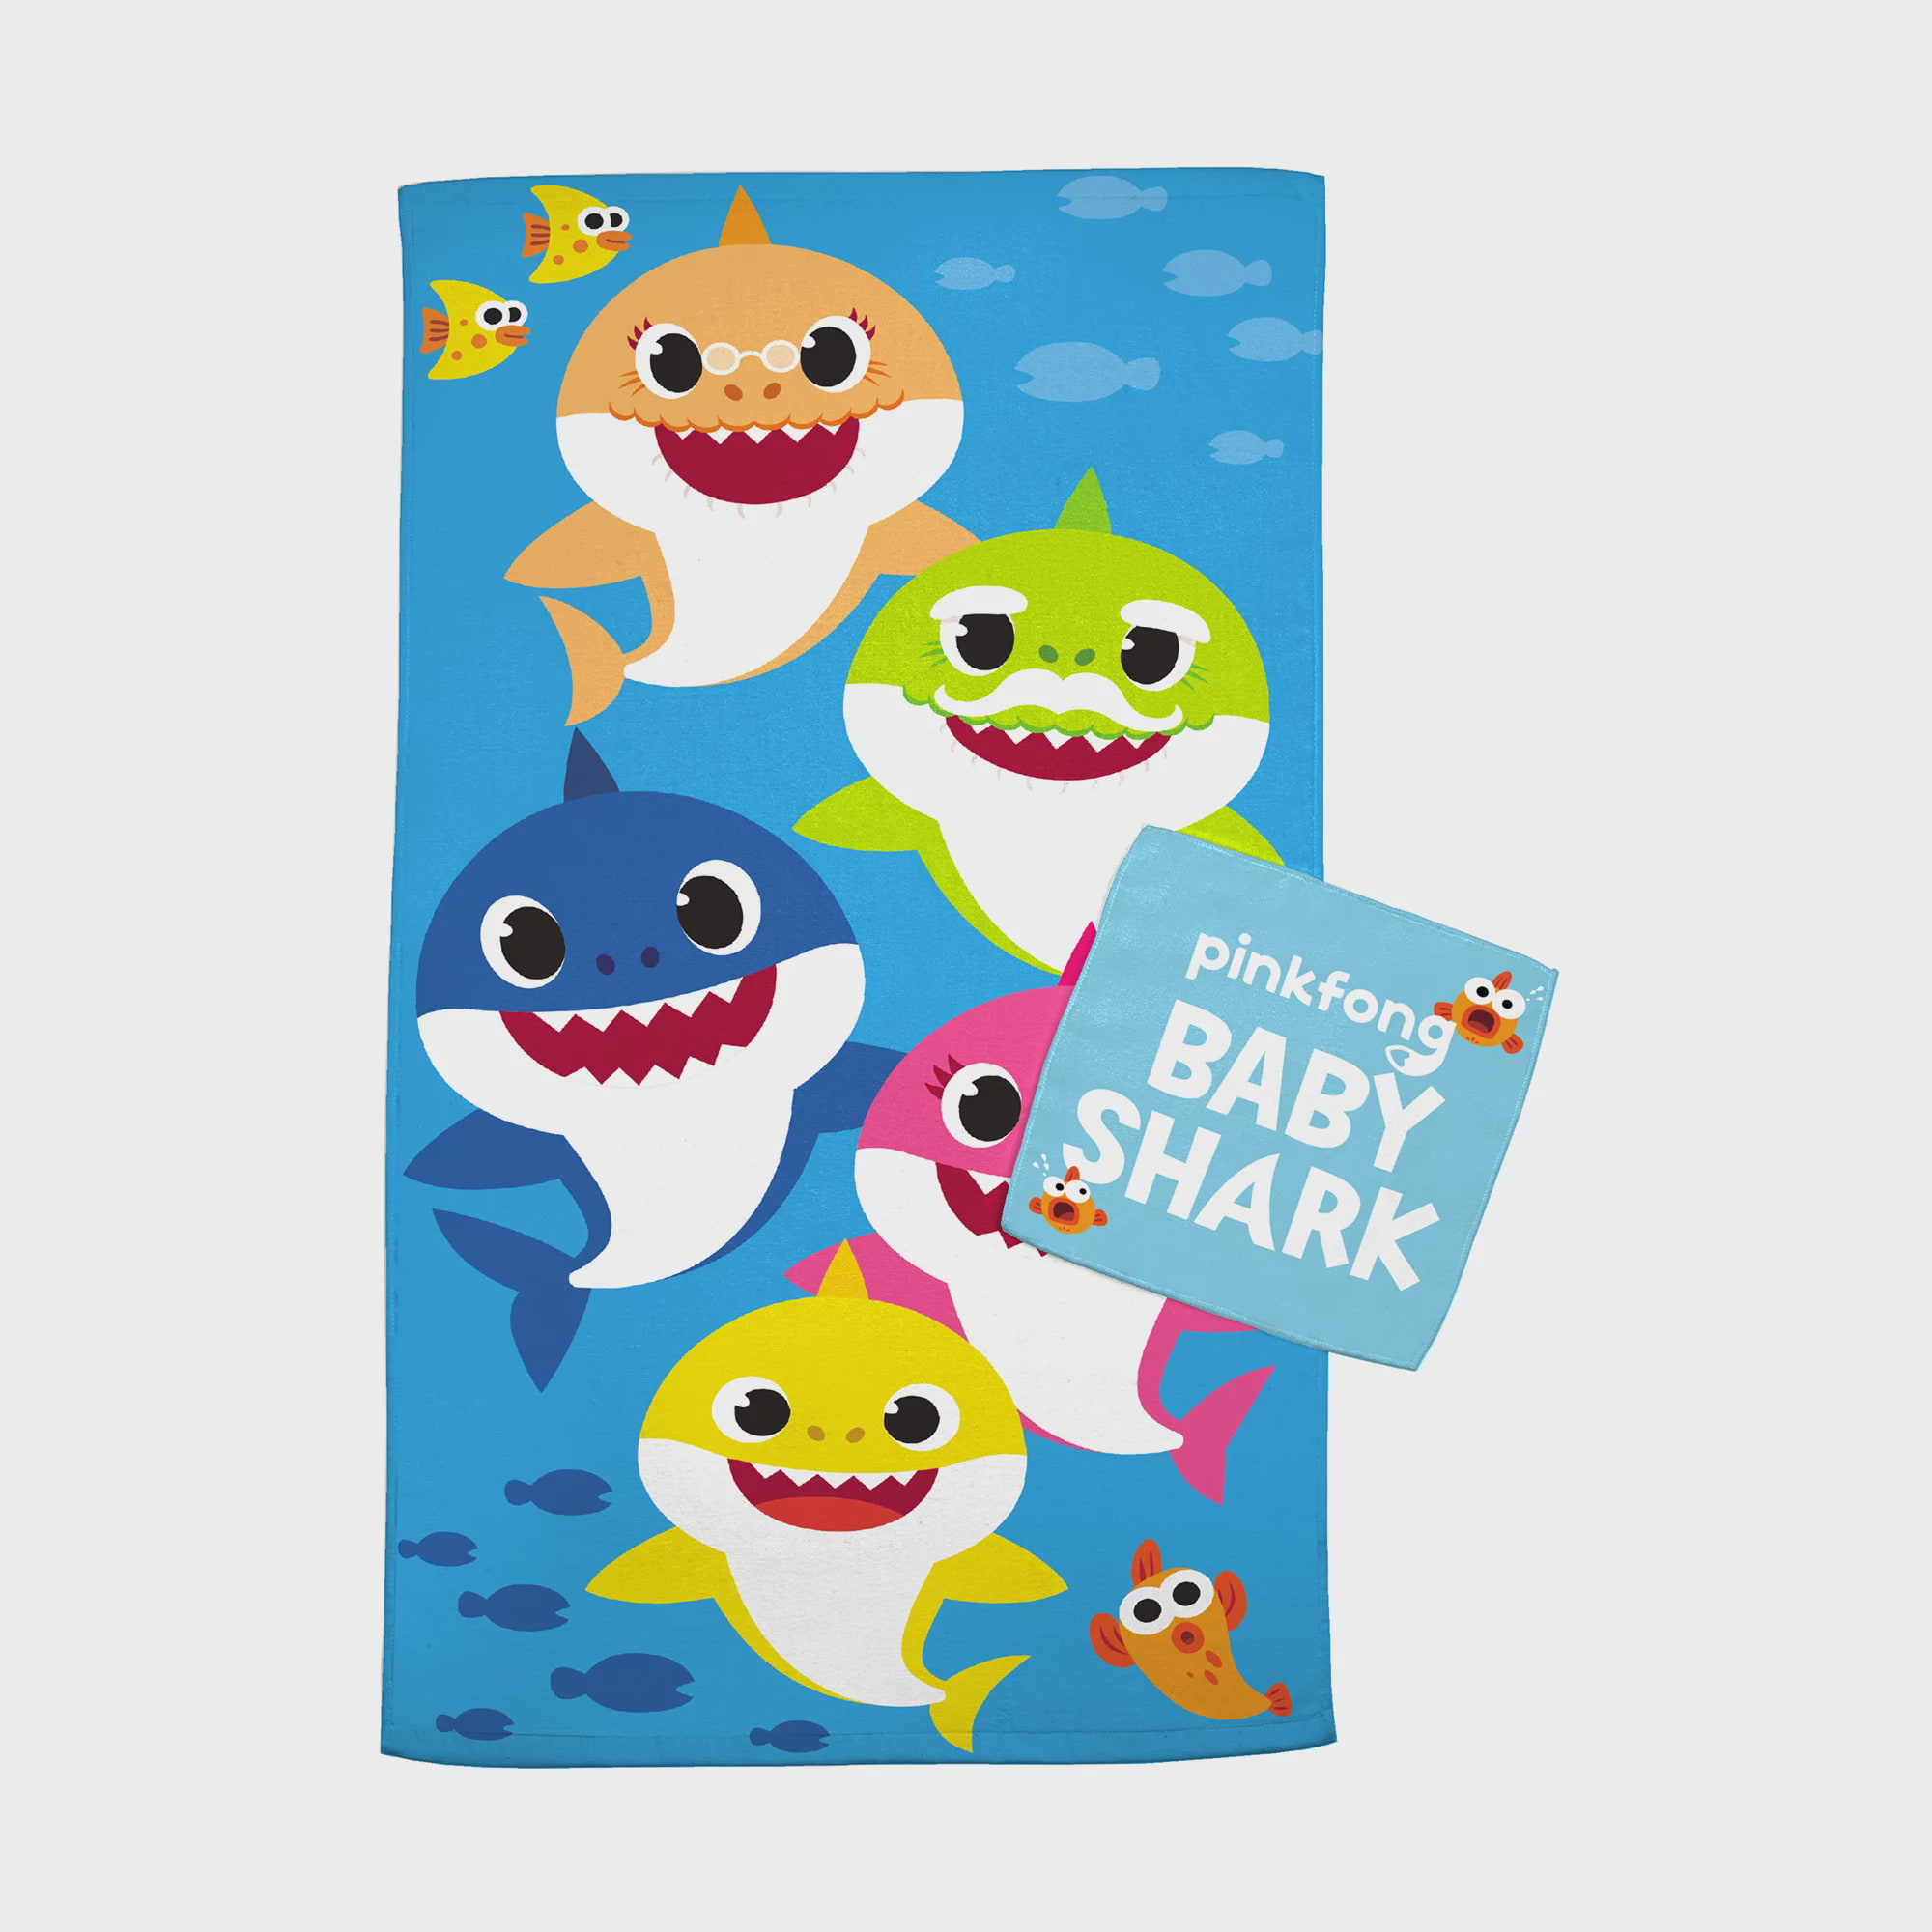 BOYS AND GIRLS BRAND NEW CHILDRENS BEACH TV CHARACTERS BATH TOWELS